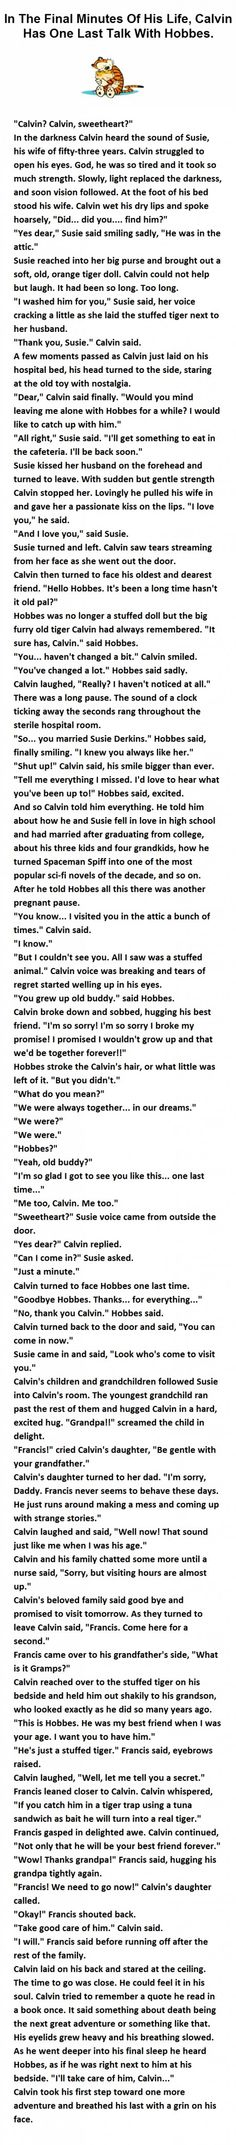 Calvin Has One Last Talk With Hobbes... The original is at http://www.reddit.com/r/WritingPrompts/comments/25gtsw/eu_in_the_final_minutes_of_his_life_calvin_has/